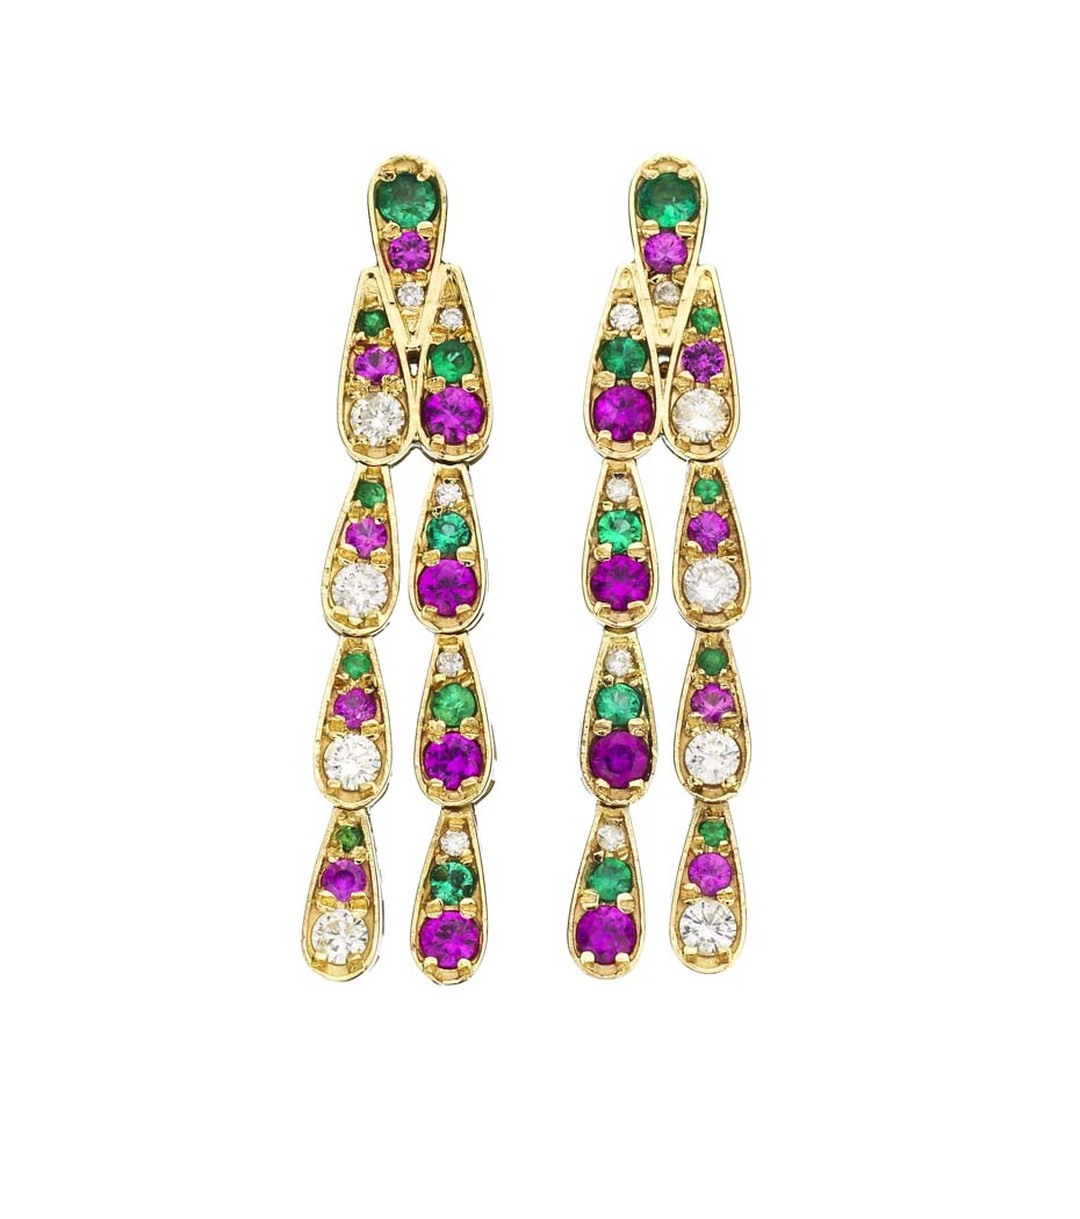 Sabine G Harlequin collection white gold earrings with white diamonds, emeralds and pink sapphires.